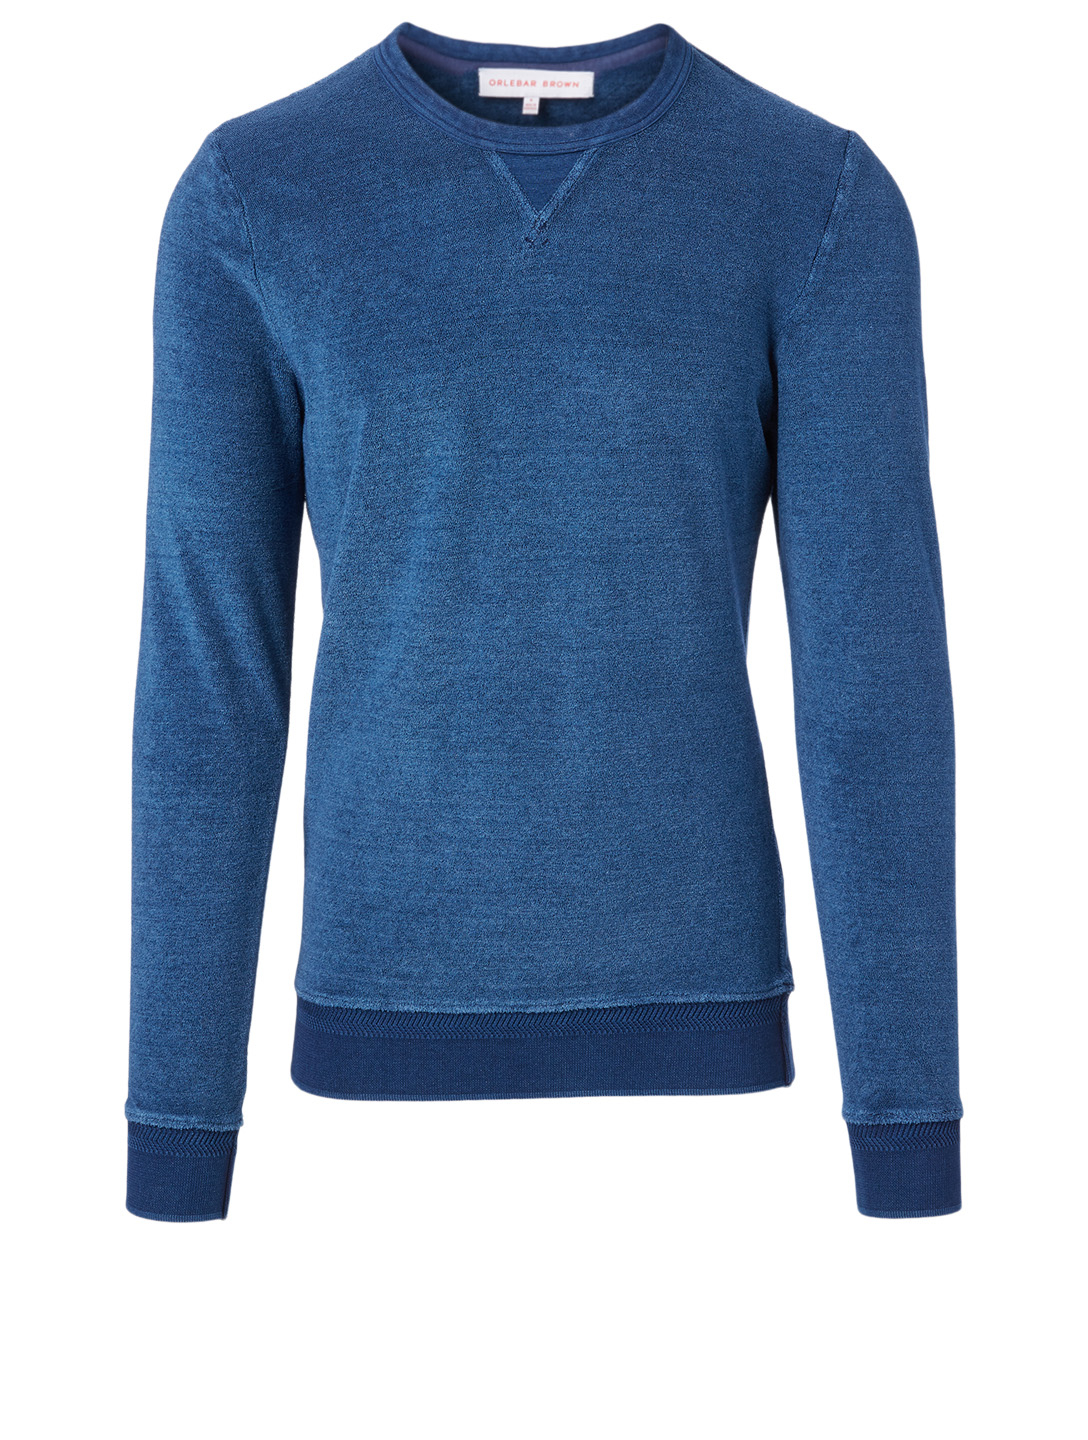 ORLEBAR BROWN Pierce Towel Sweatshirt Men's Blue